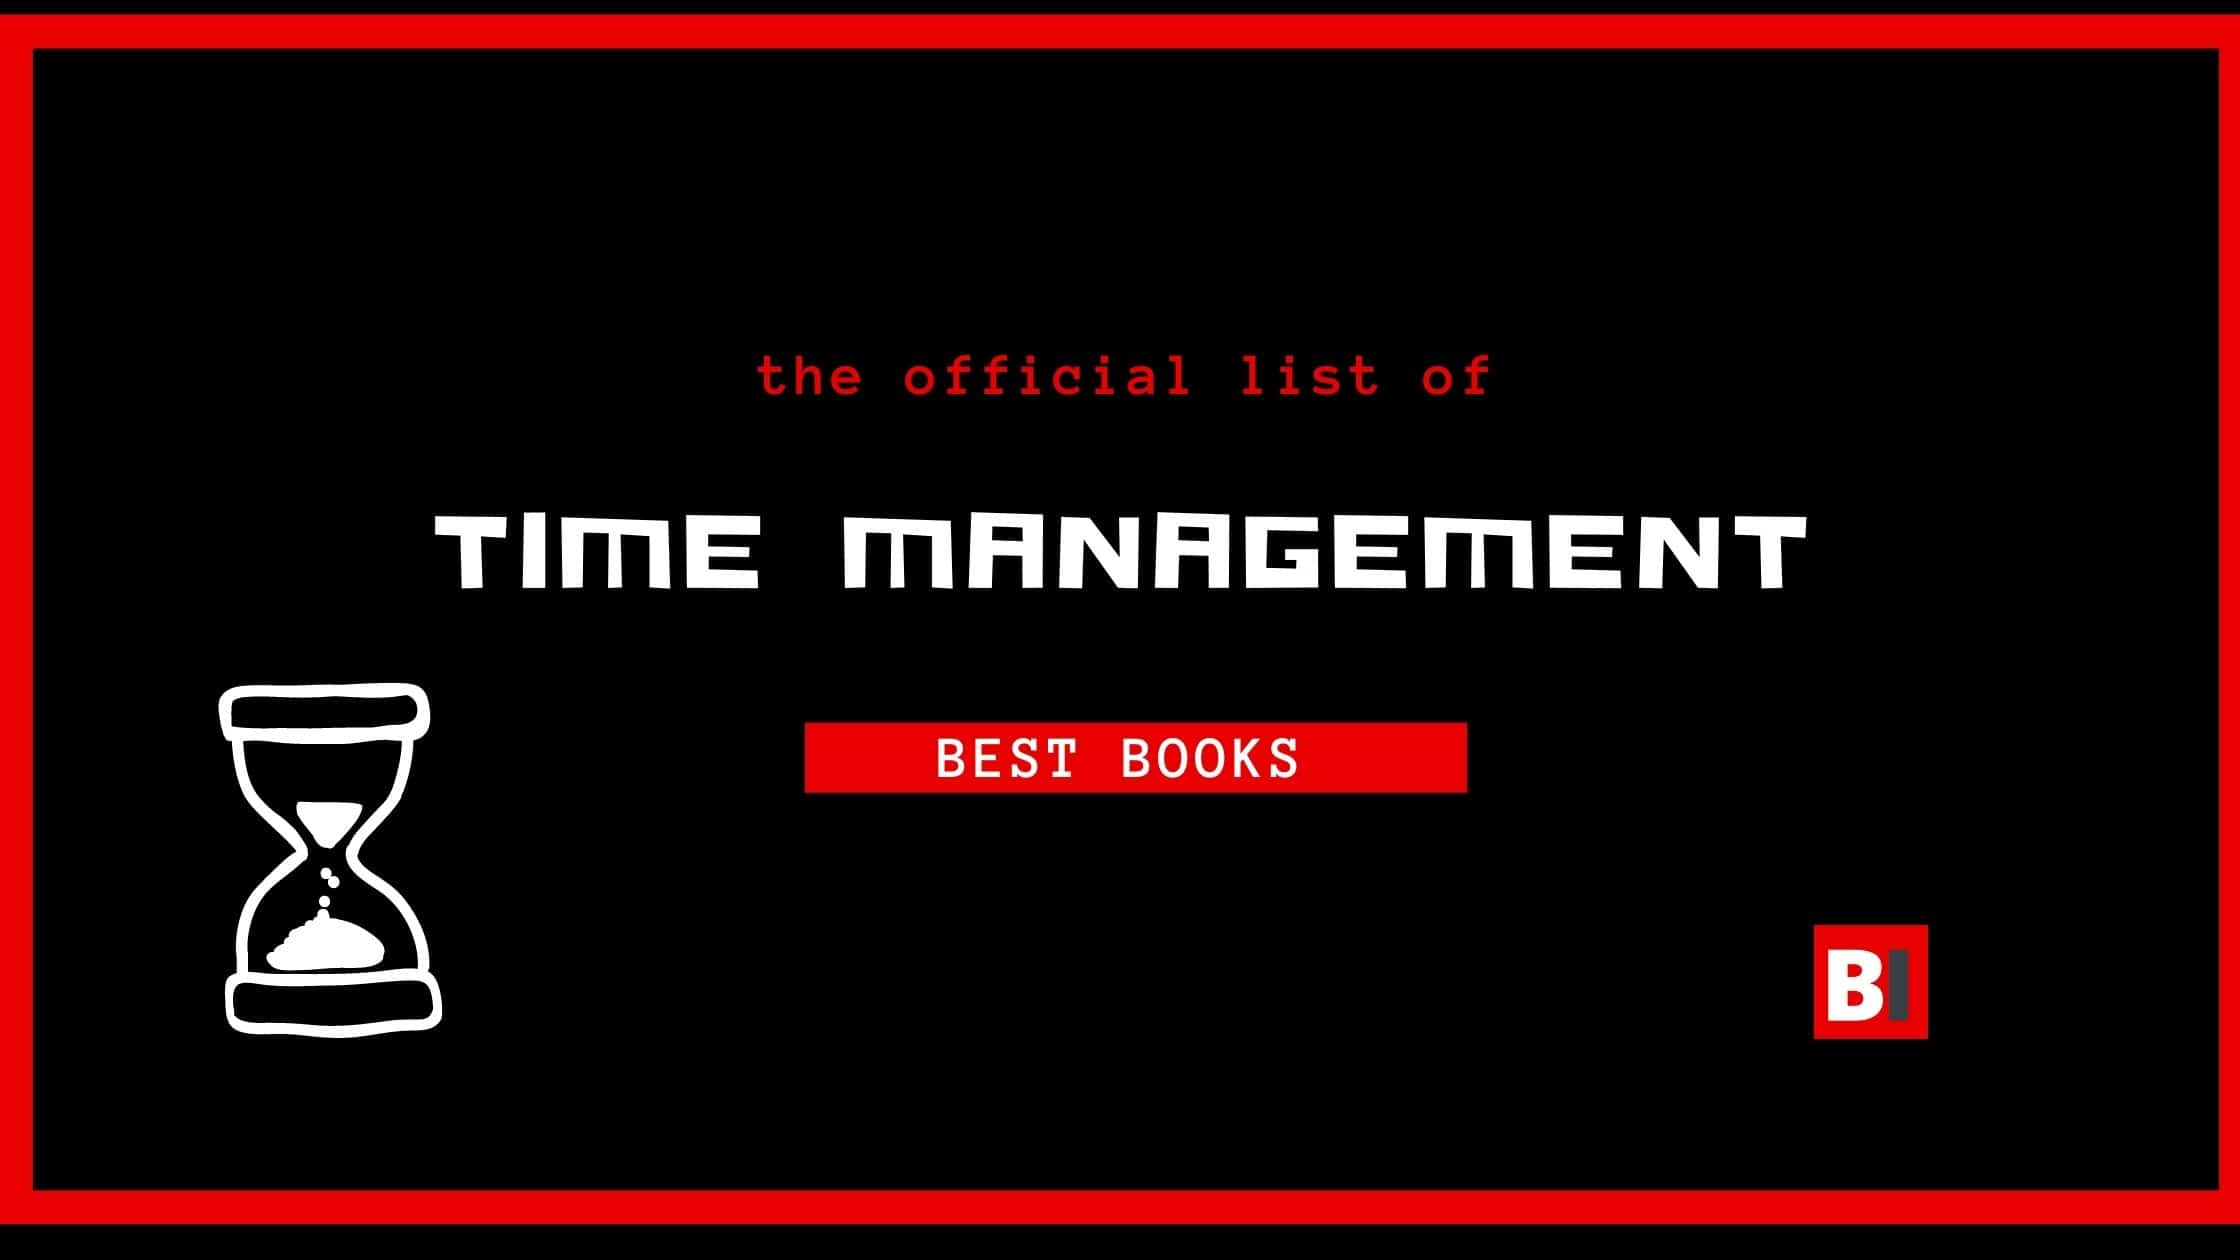 Best Books on Time Management